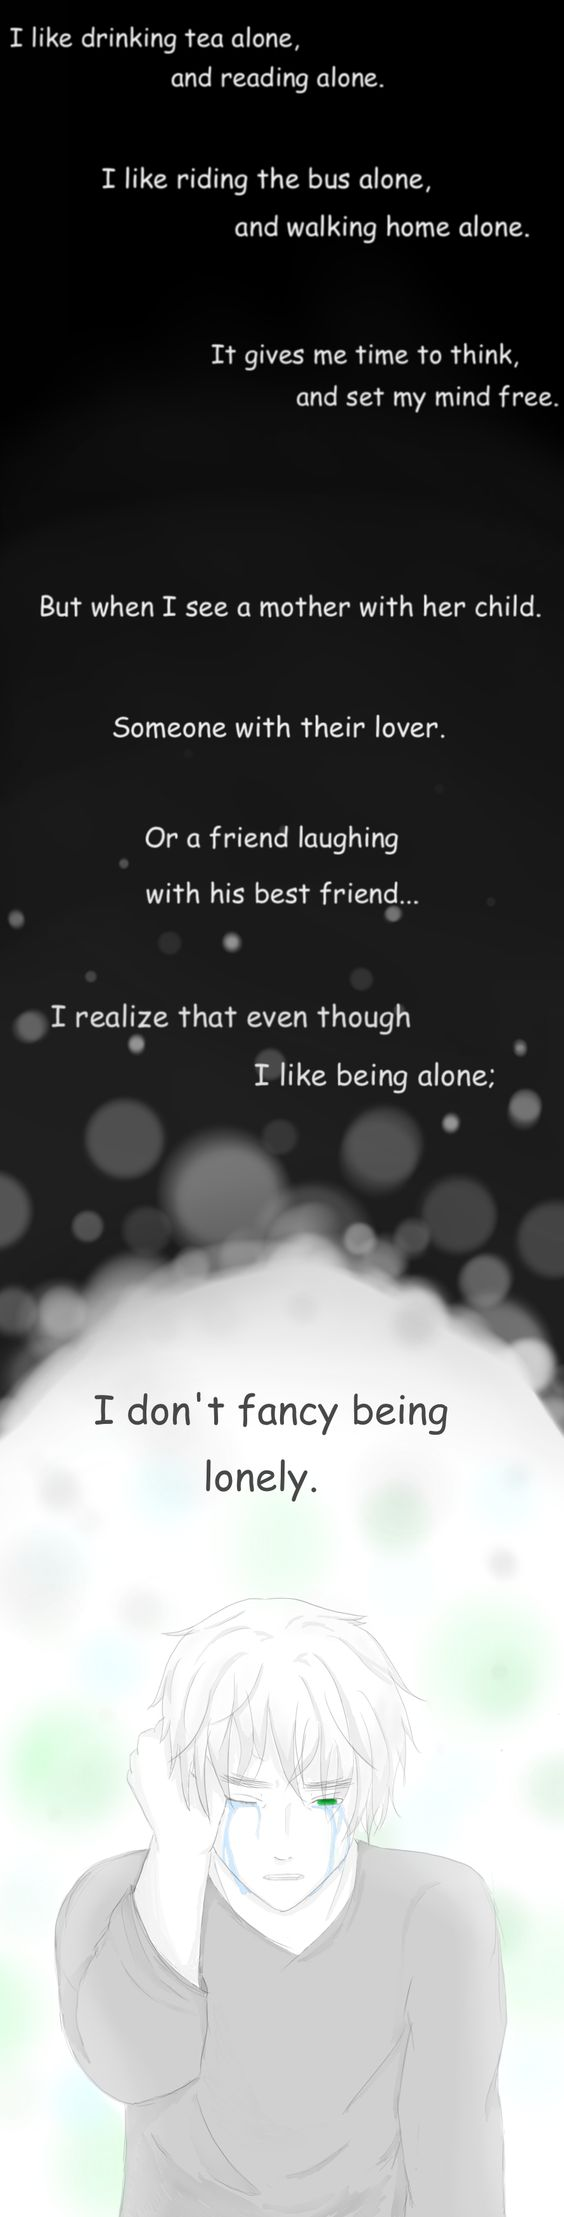 I'm the exact same way. I like to be alone in my room but I don't wanna be lonely without friends and such for a while.